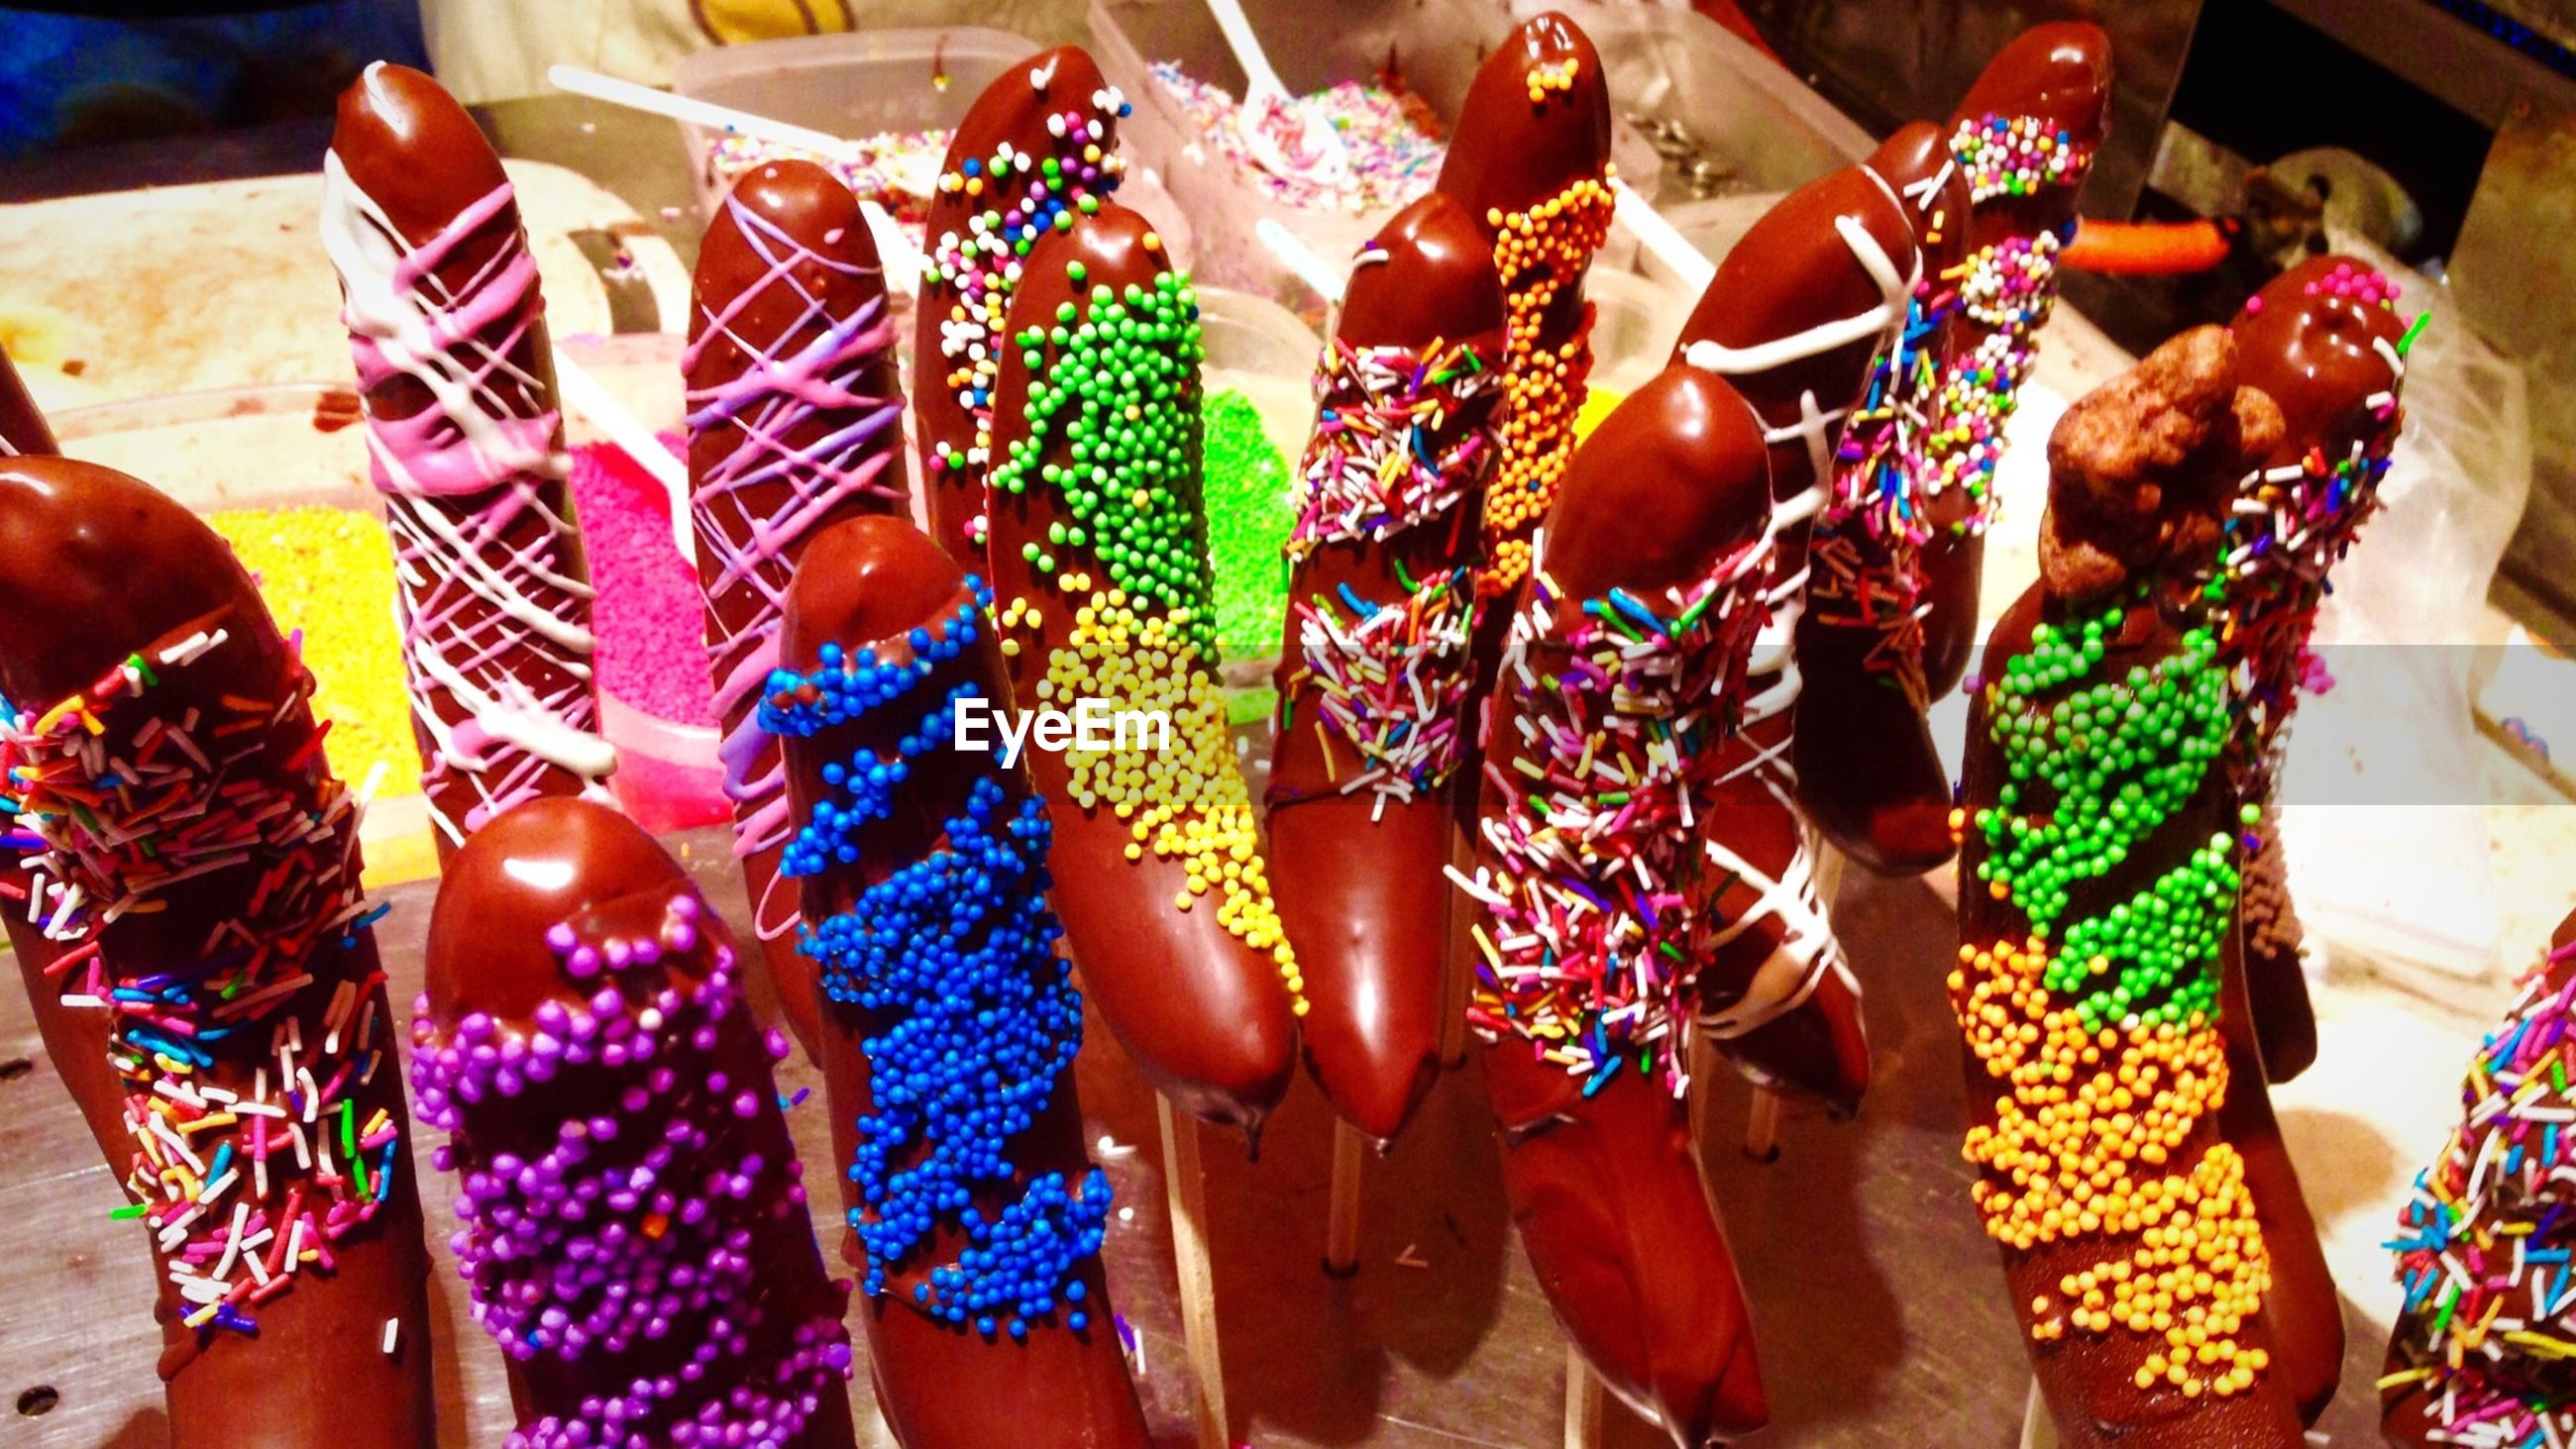 food and drink, freshness, variation, food, choice, for sale, celebration, multi colored, person, abundance, retail, lifestyles, indoors, sweet food, tradition, market stall, leisure activity